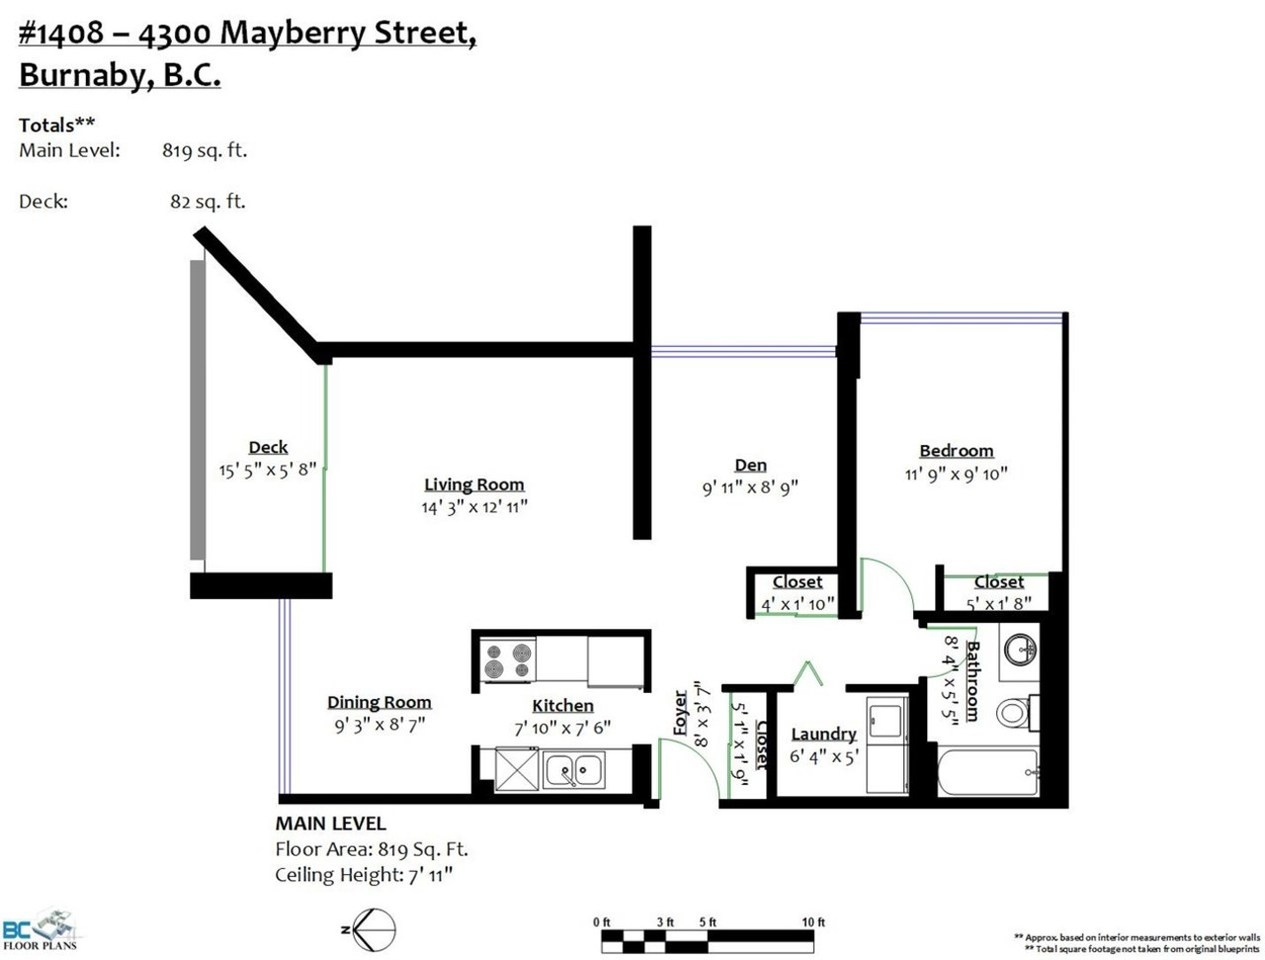 4300-mayberry-street-metrotown-burnaby-south-19 at 1408 - 4300 Mayberry Street, Metrotown, Burnaby South